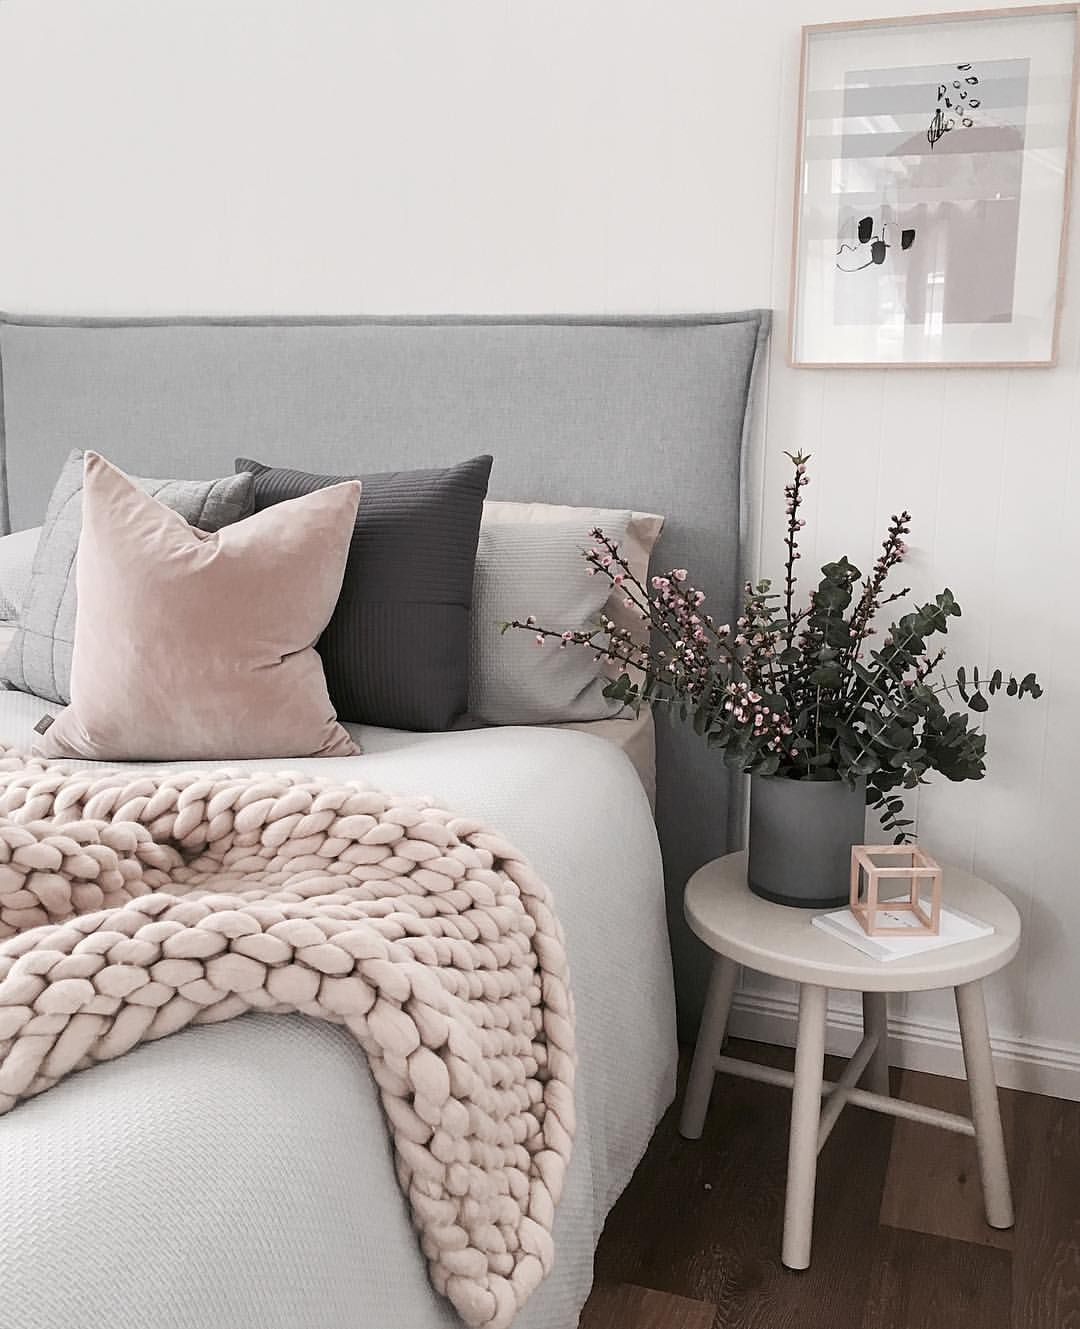 T H E S A B L On Instagram Sharing This Set Up One More Time For Good Measure Cause I Love It Blush Pink Living Roomblush Grey